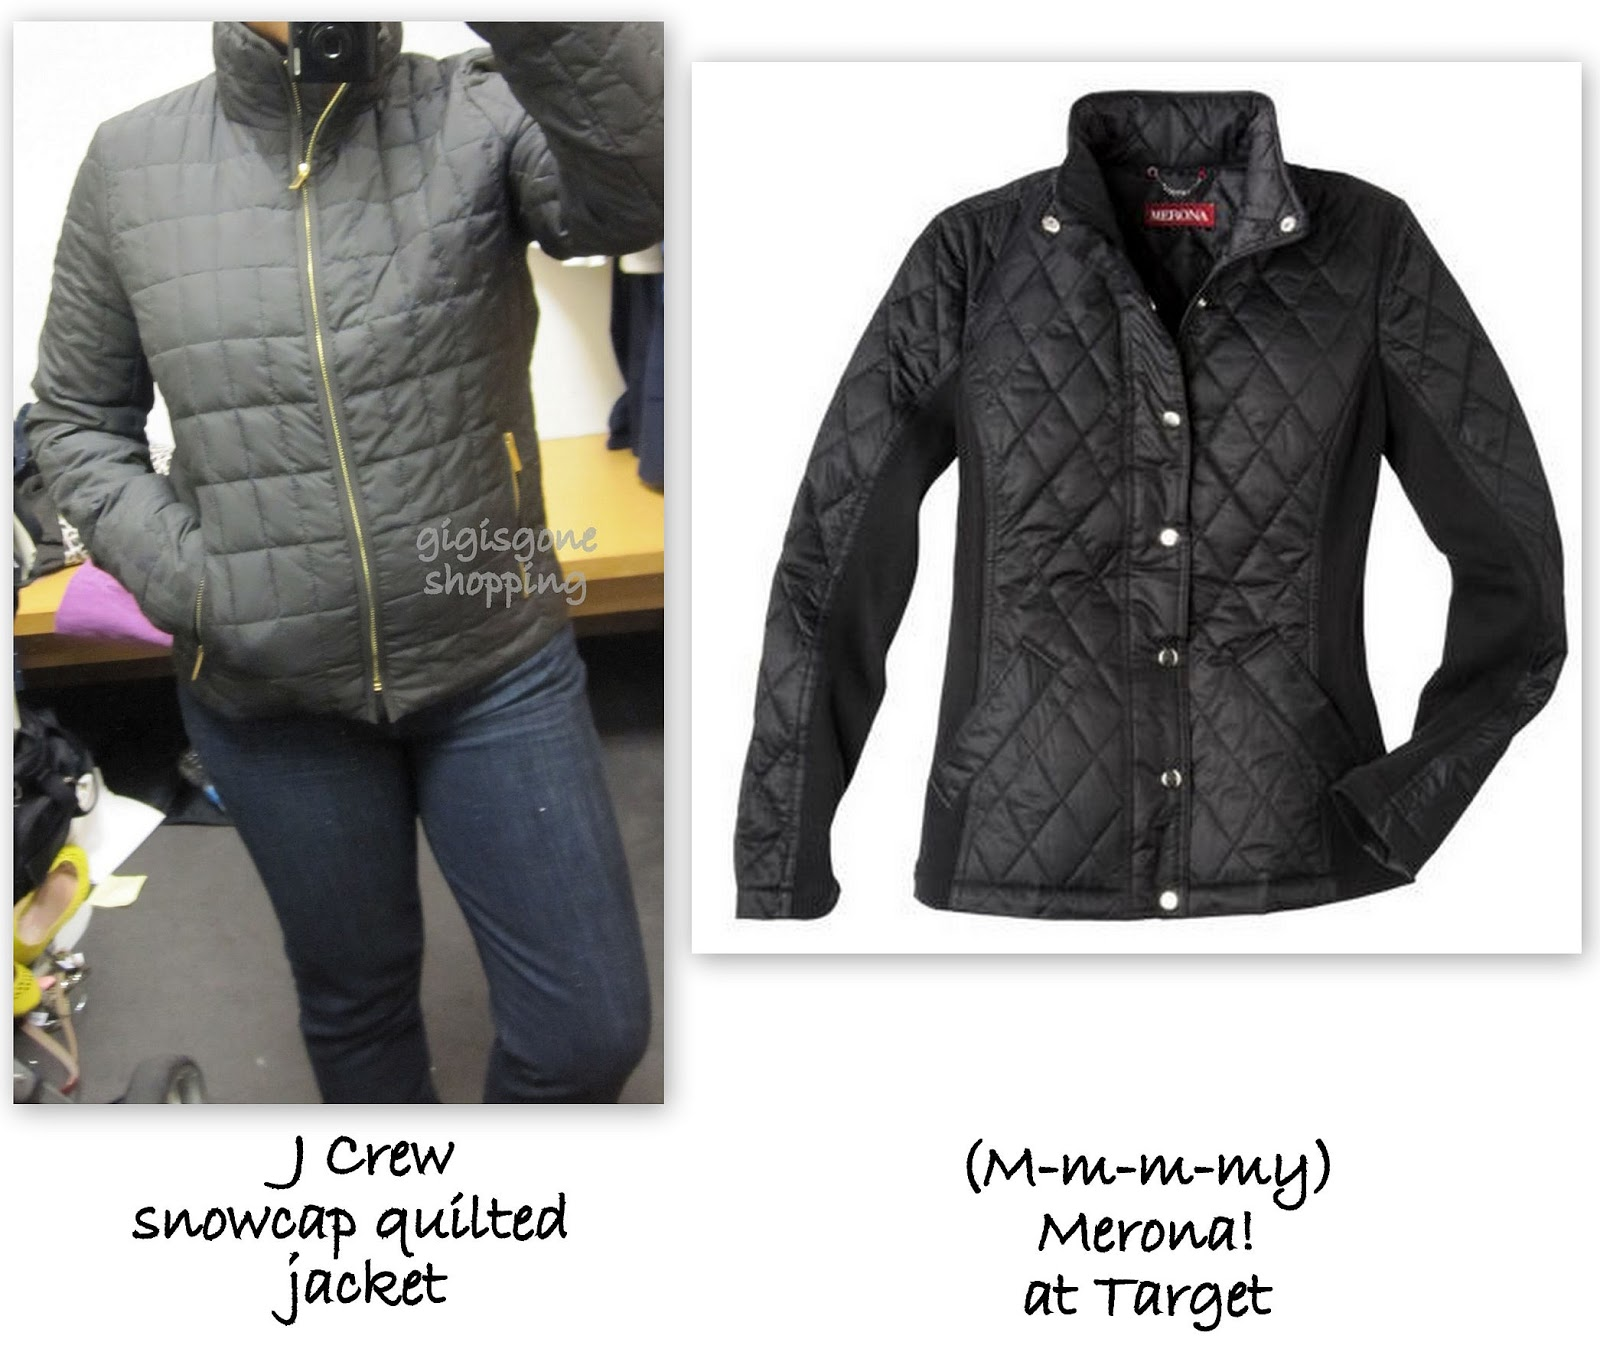 Leather jacket target - Merona Quilted Jacket 39 99 Size S I Think The Price Is Right For This And Should Give You Some Indication Of Warmth It S For A Mild Climate Or